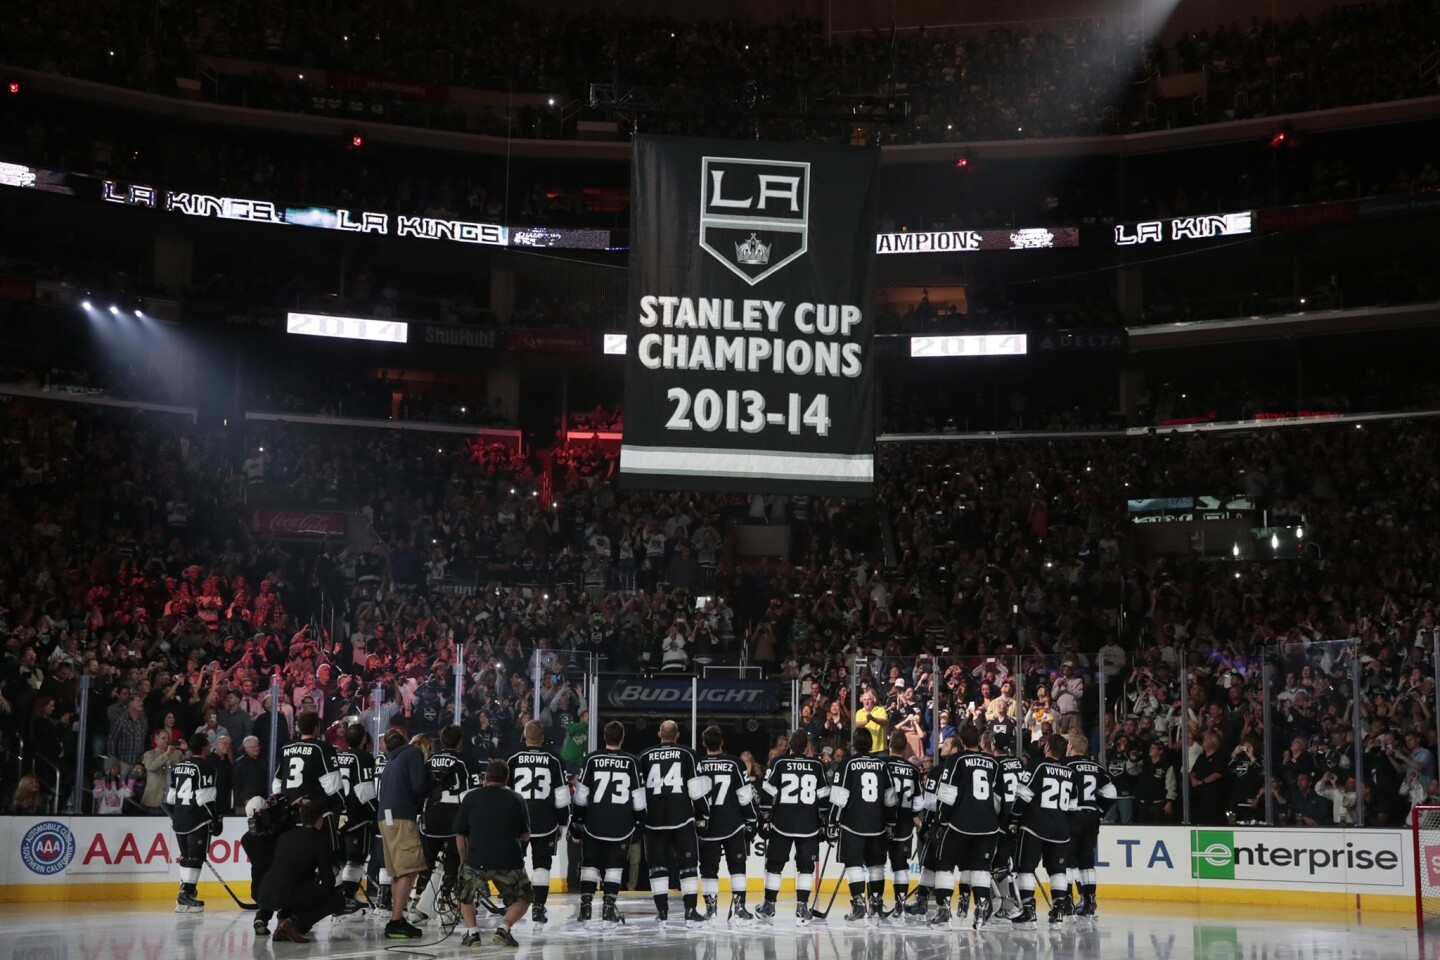 A banner honoring the Kings' 2013-14 Stanley Cup championship is lifted to the Staples Center rafters prior to the team's season 2014-15 season opener against the San Jose Sharks on Wednesday.